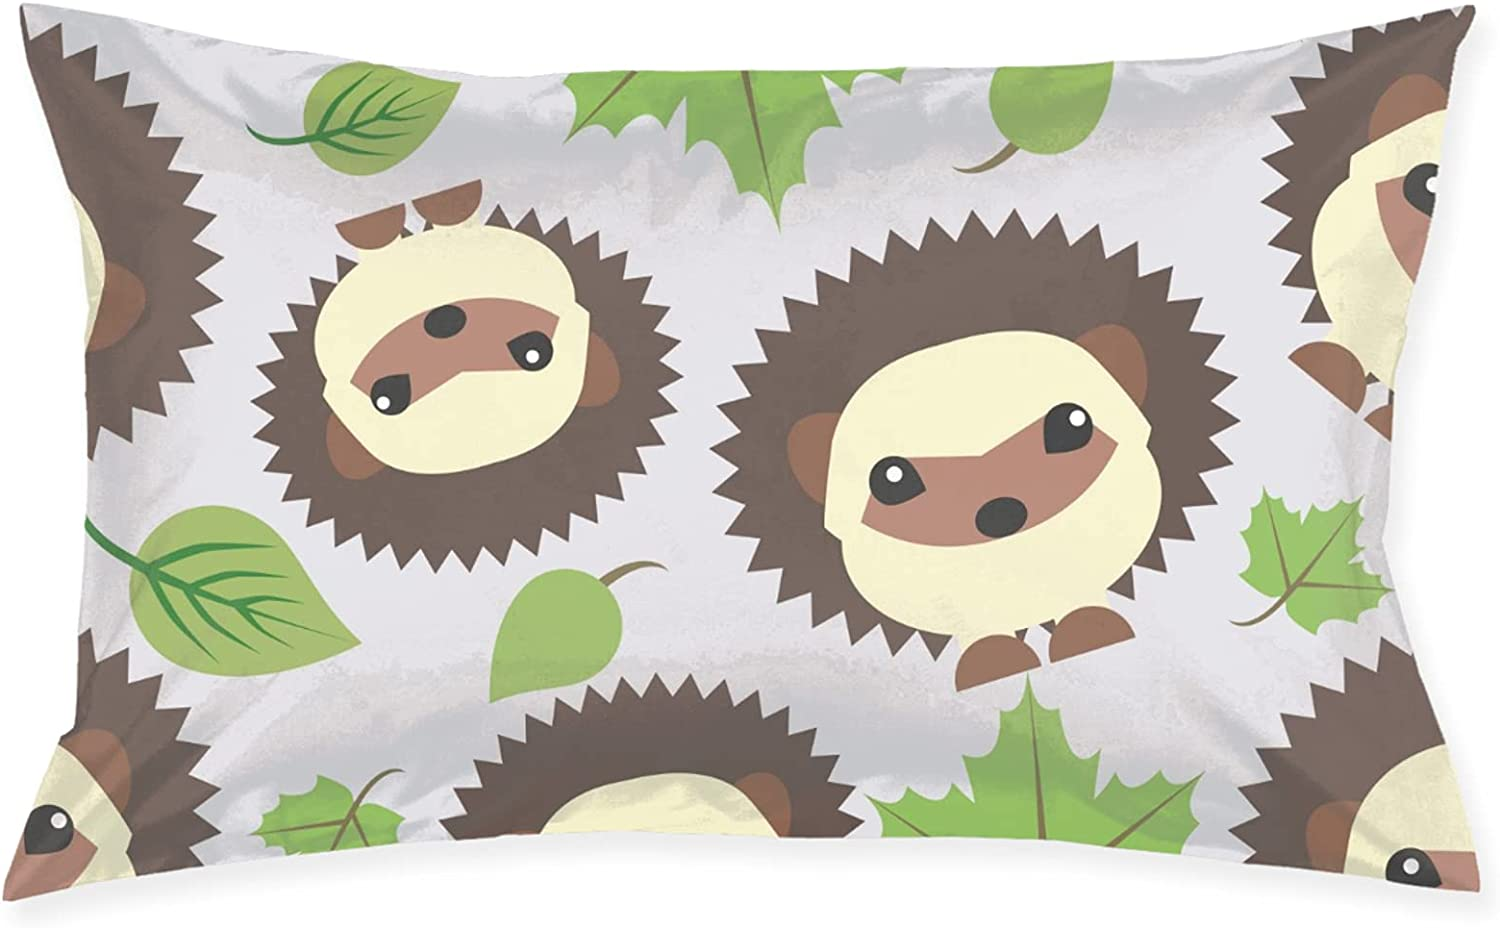 Lovely Super special price Hedgehog Pillows Pillowcase Free Shipping New Pillow Sleeping Bed